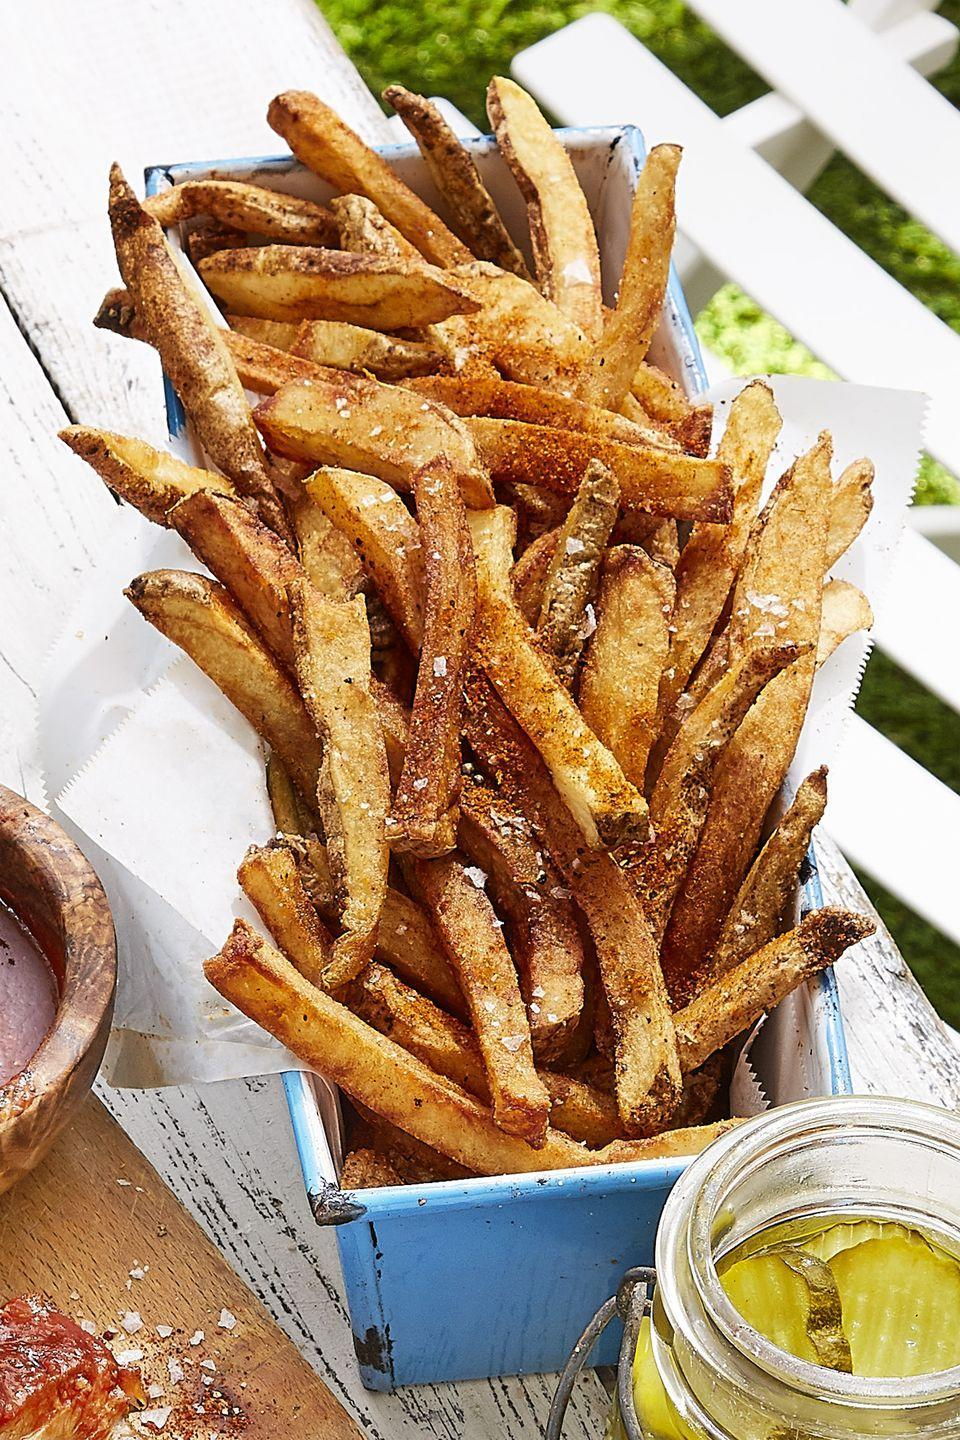 "<p>Sprinkle Old Bay seasoning on double-fried fries for an instant upgrade.</p><p><strong><a href=""https://www.countryliving.com/food-drinks/recipes/a43060/old-bay-french-fries-recipe/?visibilityoverride"" rel=""nofollow noopener"" target=""_blank"" data-ylk=""slk:Get the recipe"" class=""link rapid-noclick-resp"">Get the recipe</a>.</strong></p><p><a class=""link rapid-noclick-resp"" href=""https://www.amazon.com/Professional-Extended-Vegetable-Replacement-Non-Slip/dp/B07RWH9HCX/?tag=syn-yahoo-20&ascsubtag=%5Bartid%7C10050.g.1050%5Bsrc%7Cyahoo-us"" rel=""nofollow noopener"" target=""_blank"" data-ylk=""slk:SHOP POTATO CUTTERS"">SHOP POTATO CUTTERS</a><br></p>"